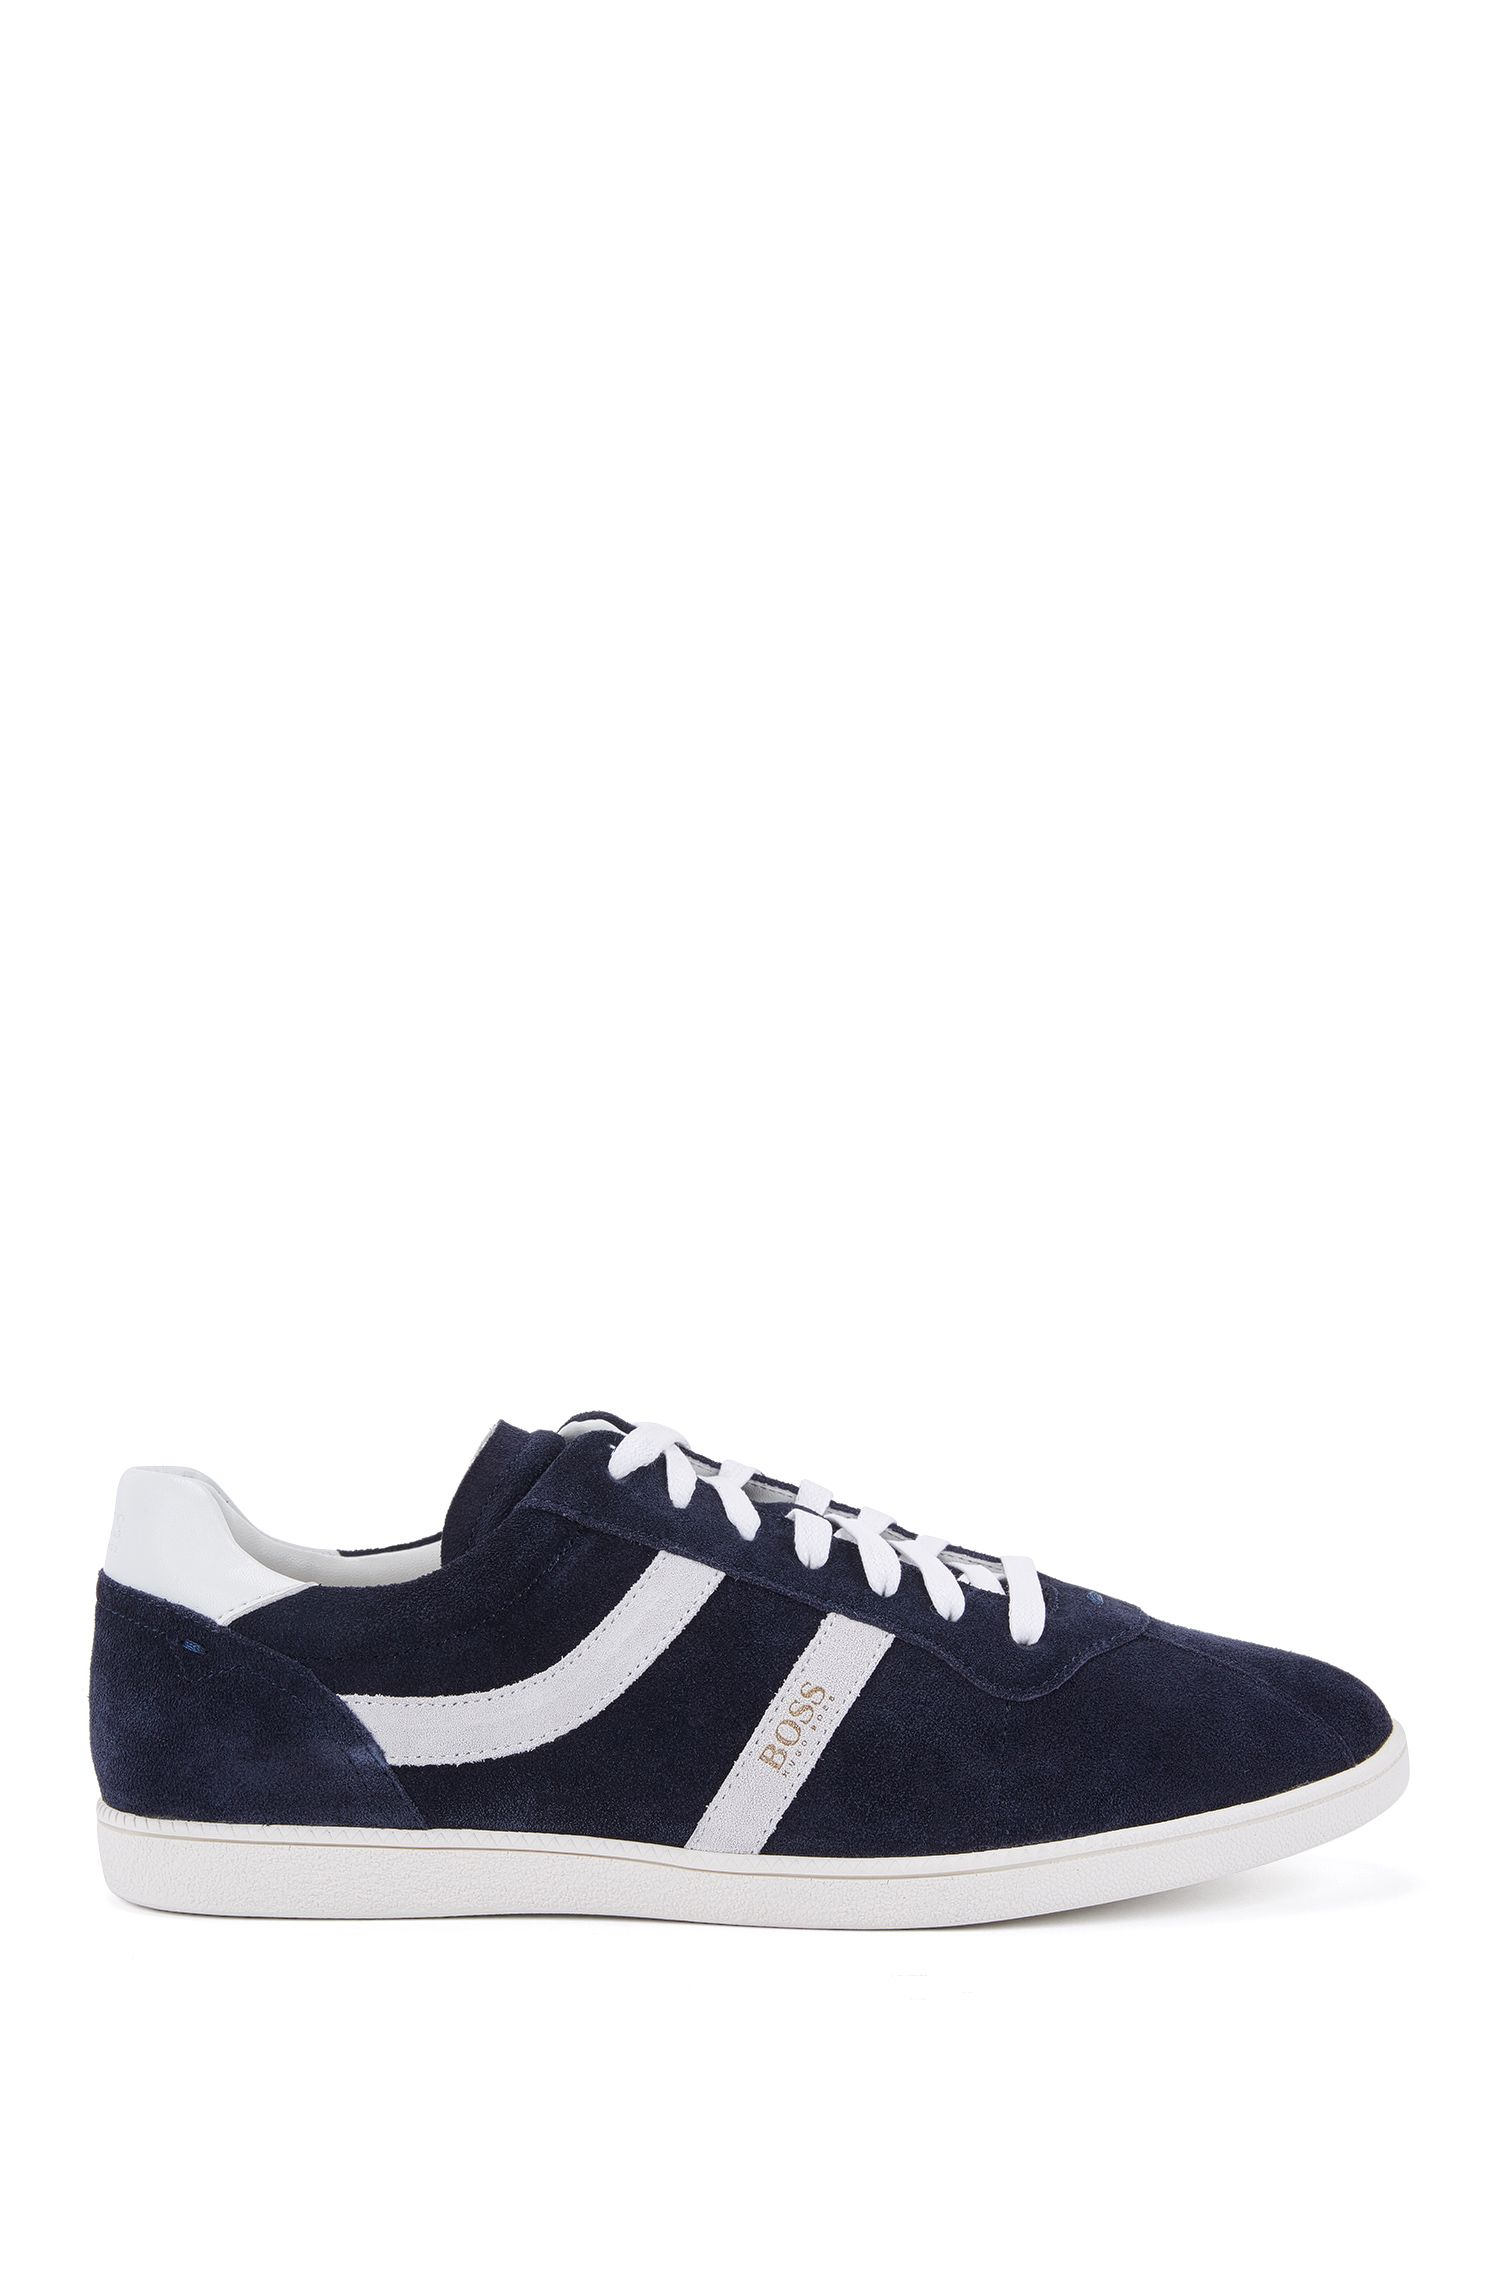 Low-top suede trainers with side stripes